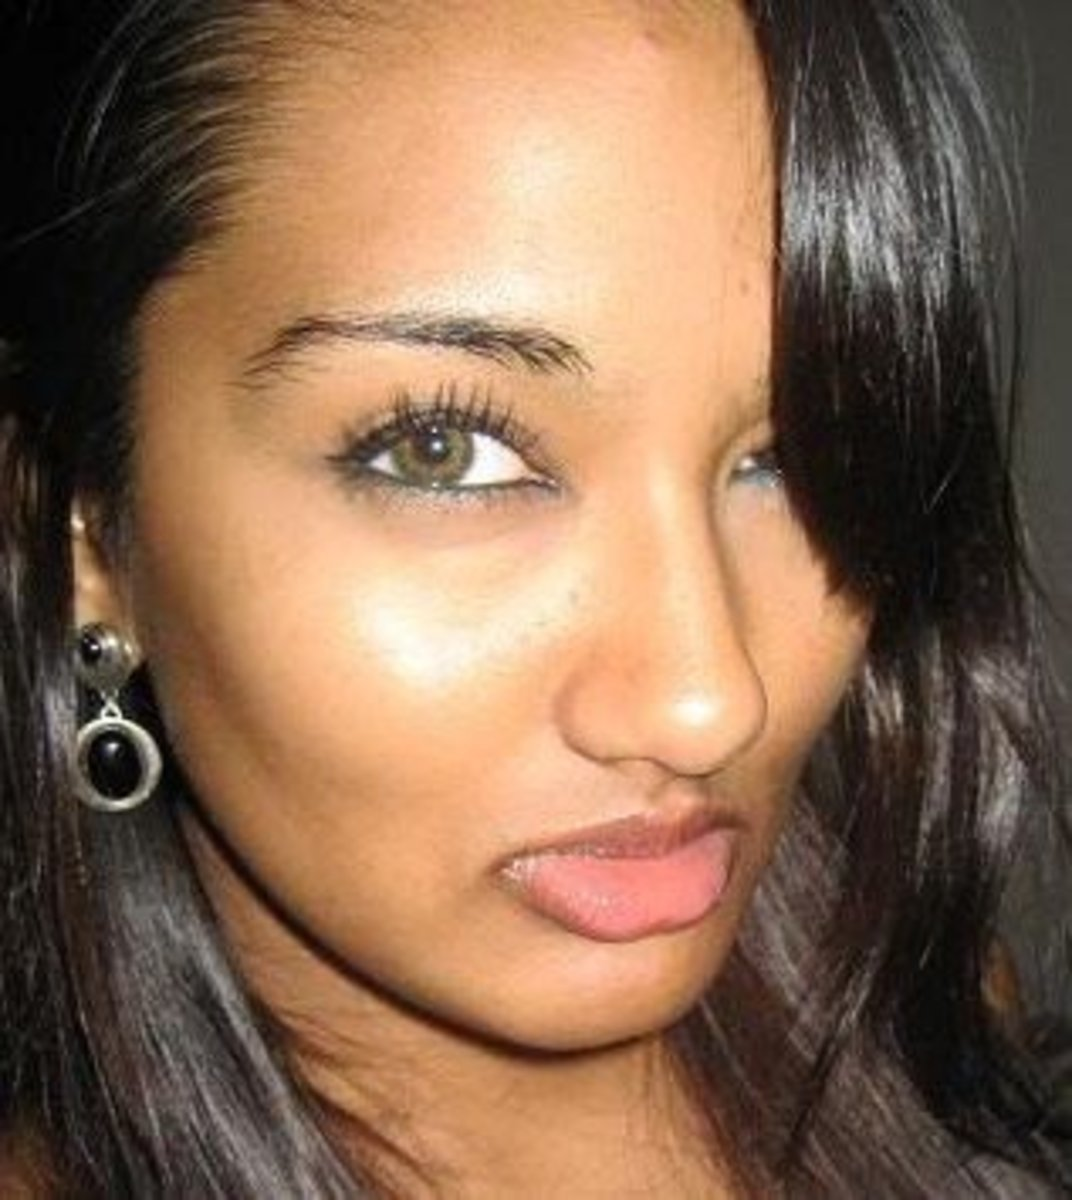 Tanned girl wearing Freshlook Colorblend contacts in Green.